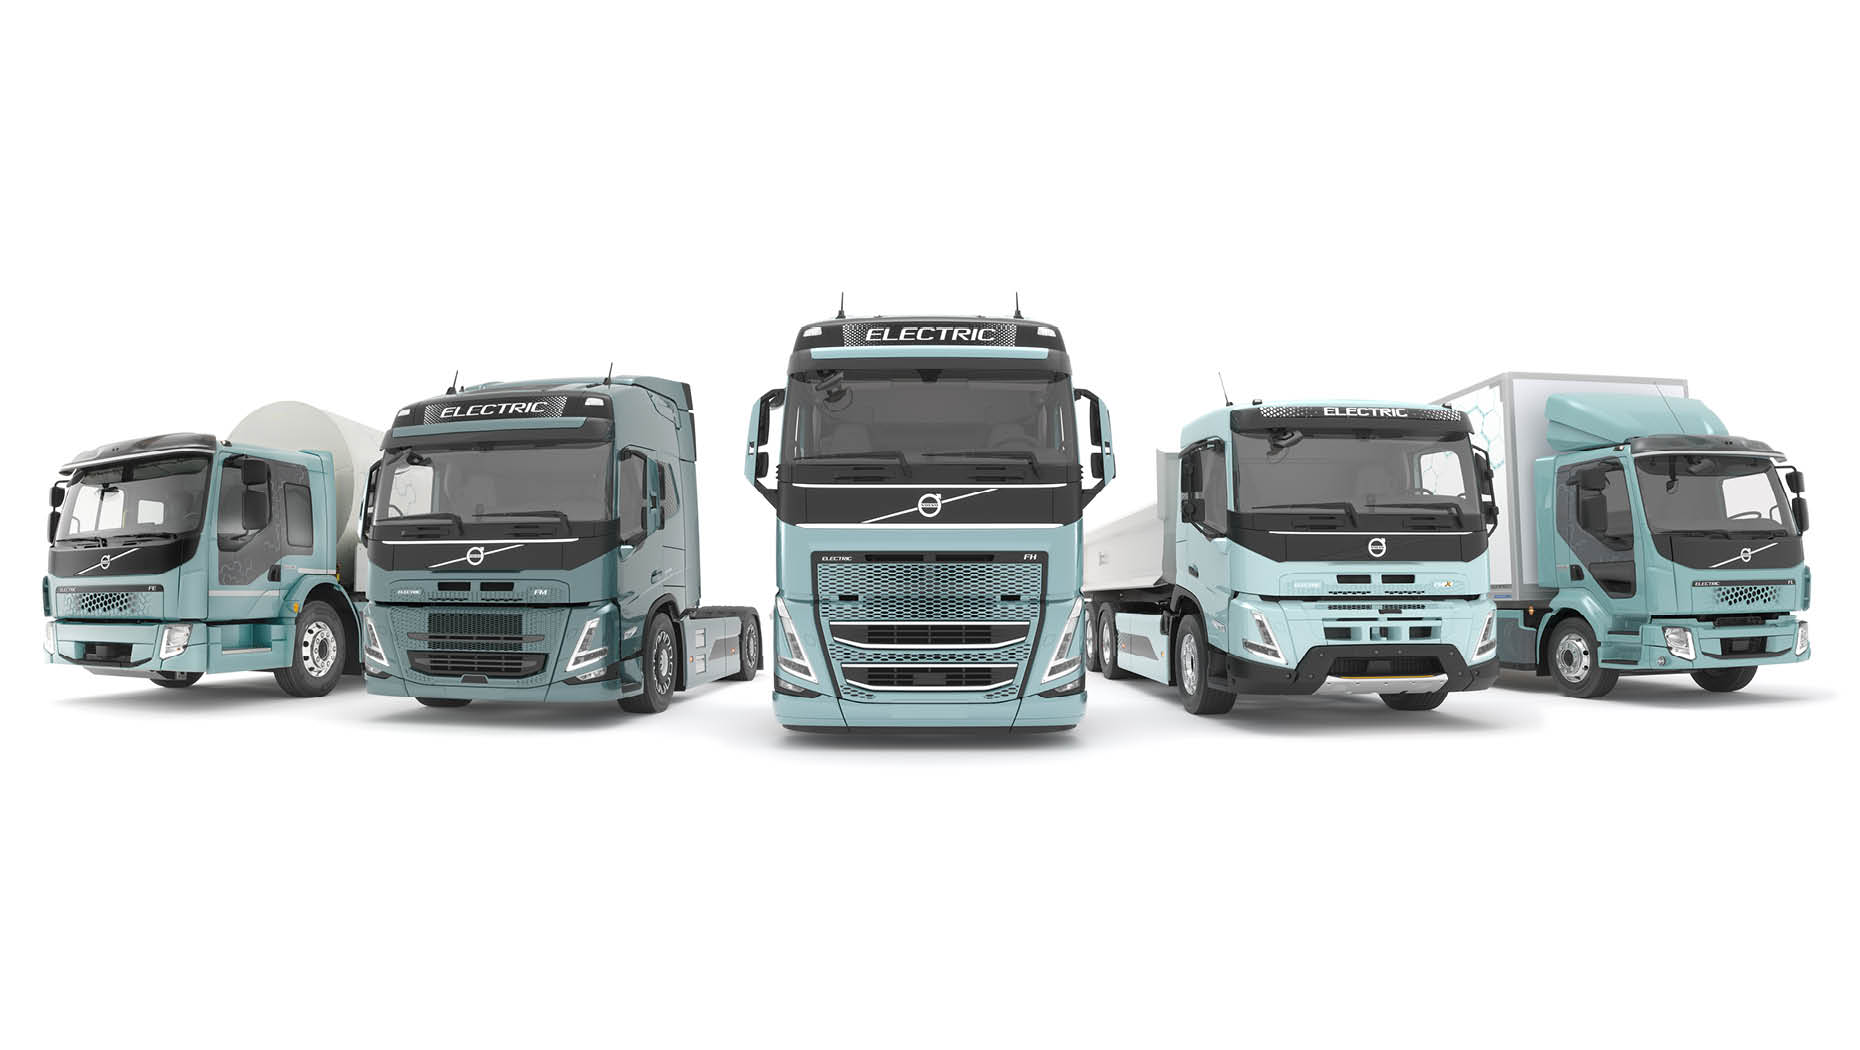 1860x1050-volvo-trucks-electric-range-eu-image